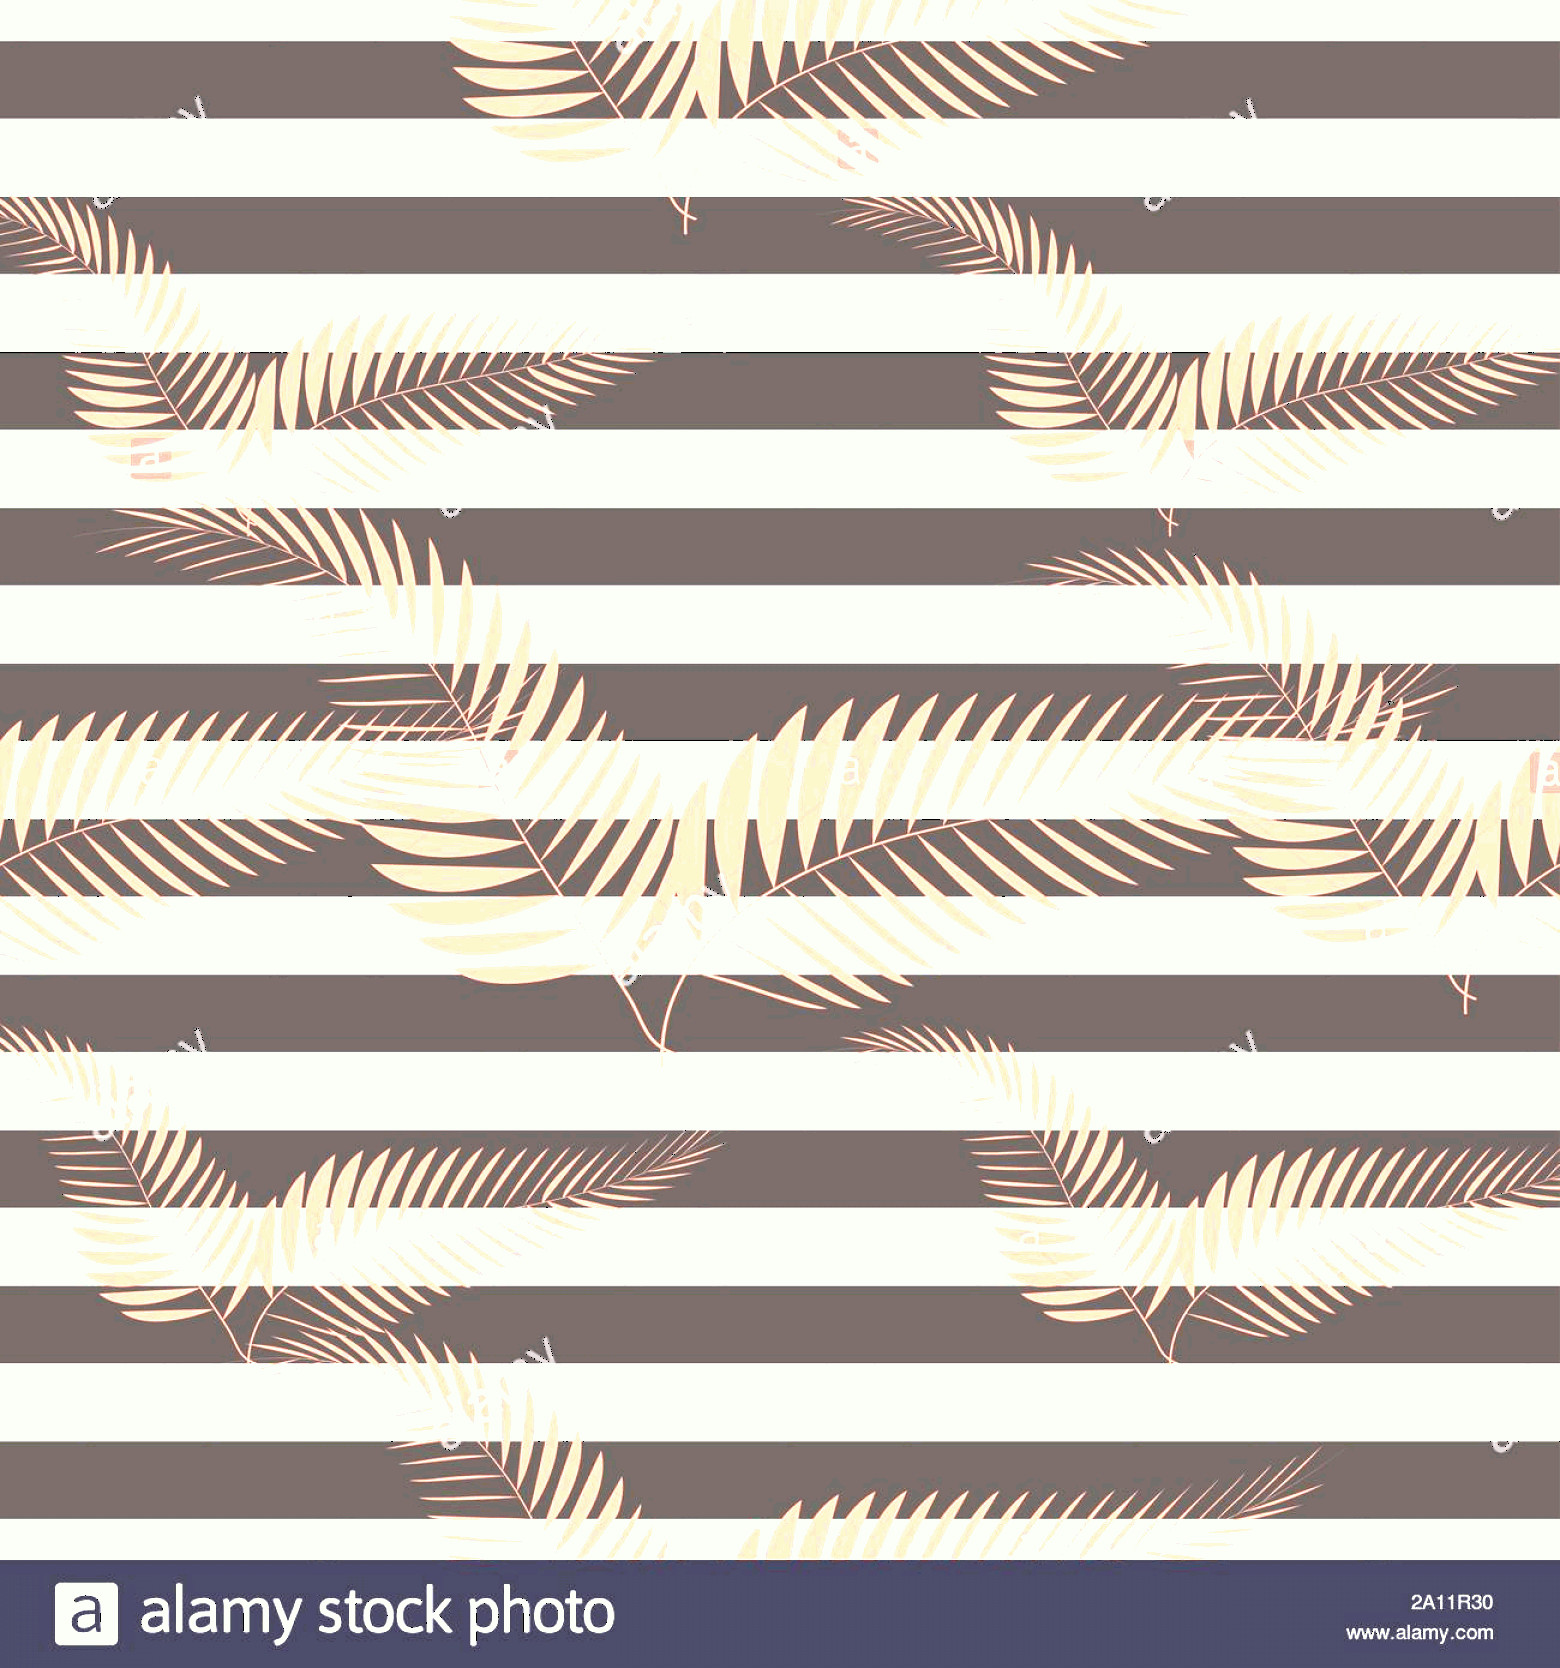 Contemporary Wallpaper Art Vector: Contemporary Geometric Fashion Print With Palm Leaves And Stripes Abstract Wallpaper Pattern Image